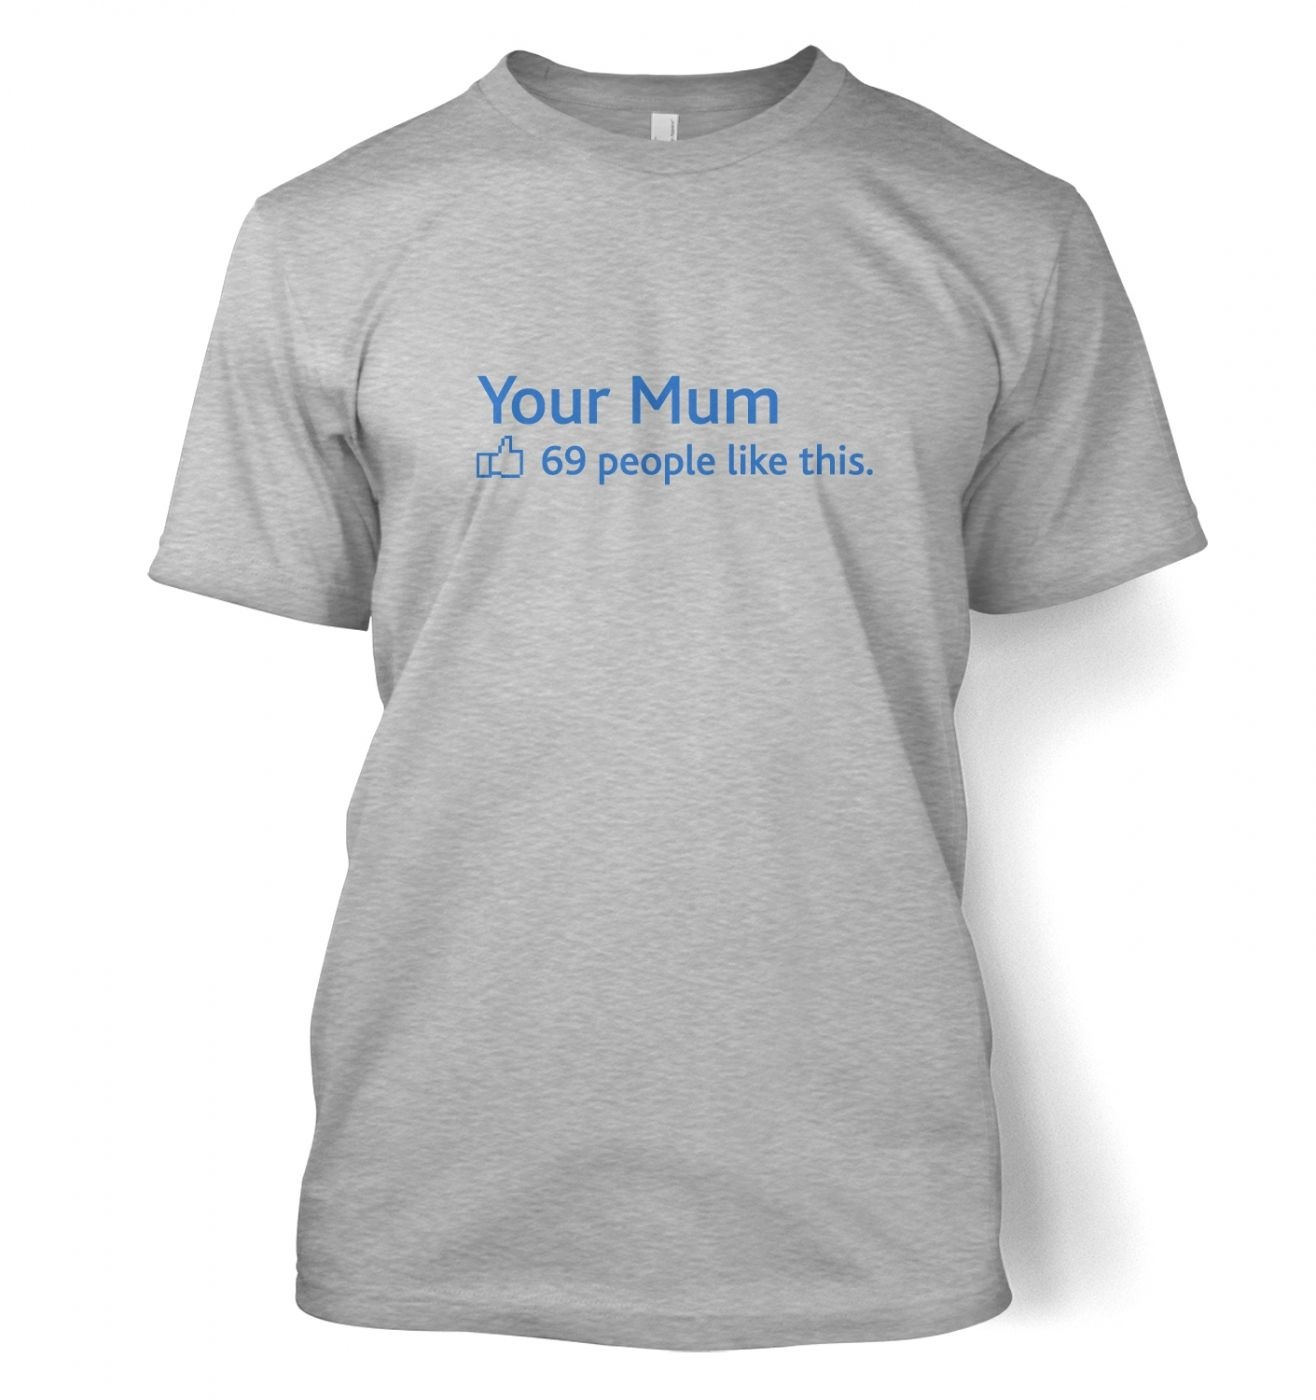 Your Mum Social Status   t-shirt